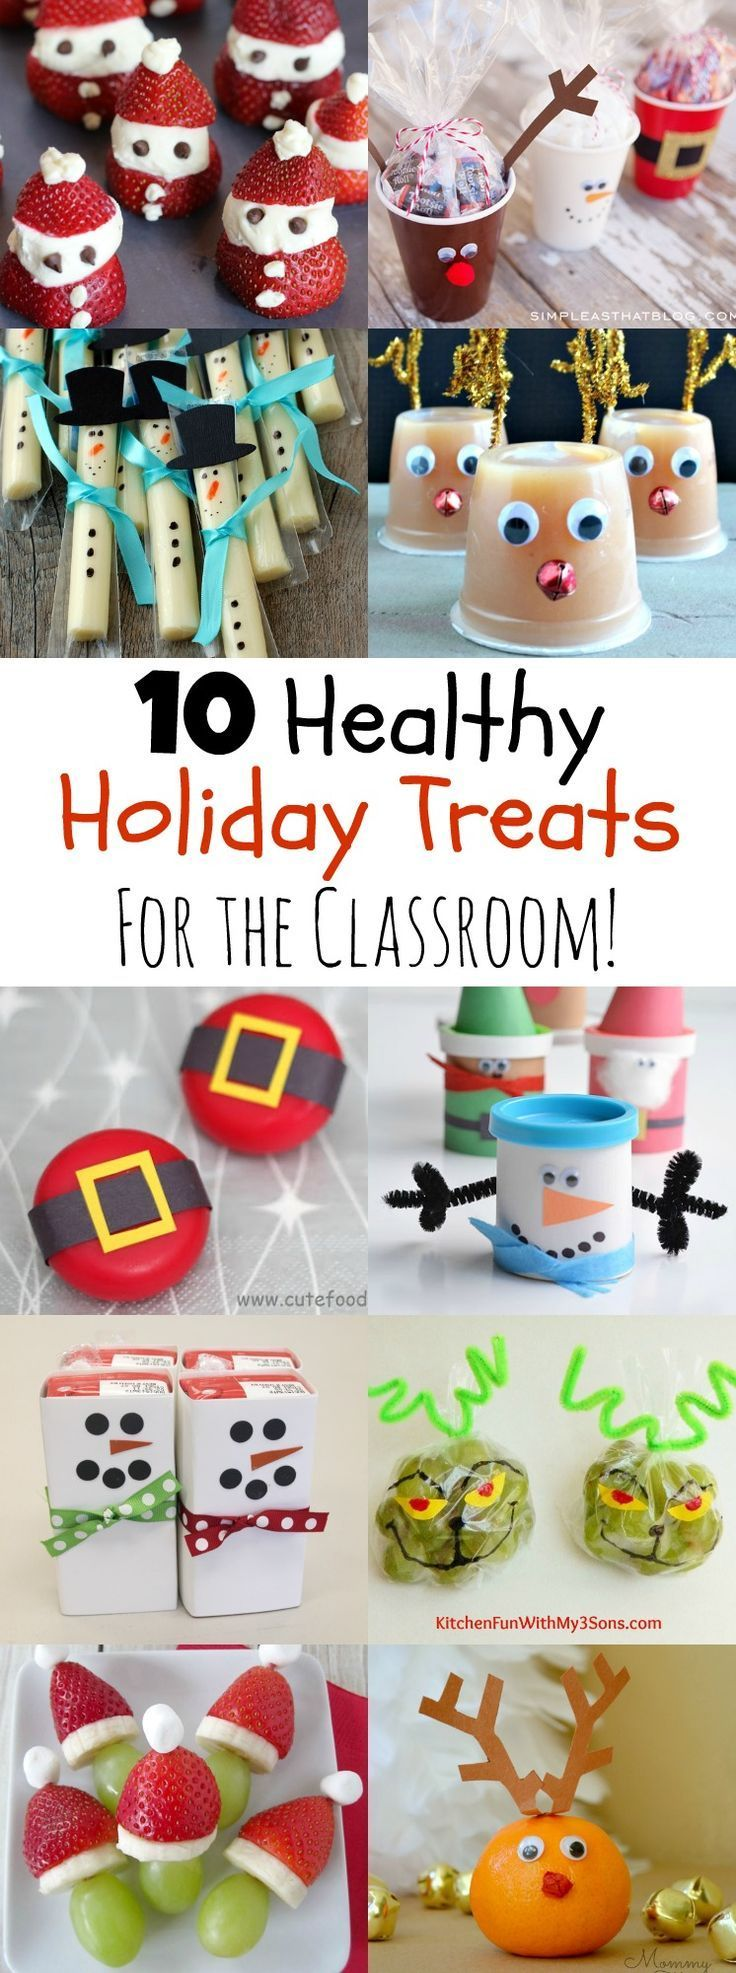 Attractive Christmas Snack Ideas For School Parties Part - 3: 10 Healthy Holiday Treats For The Classroom - MOMables